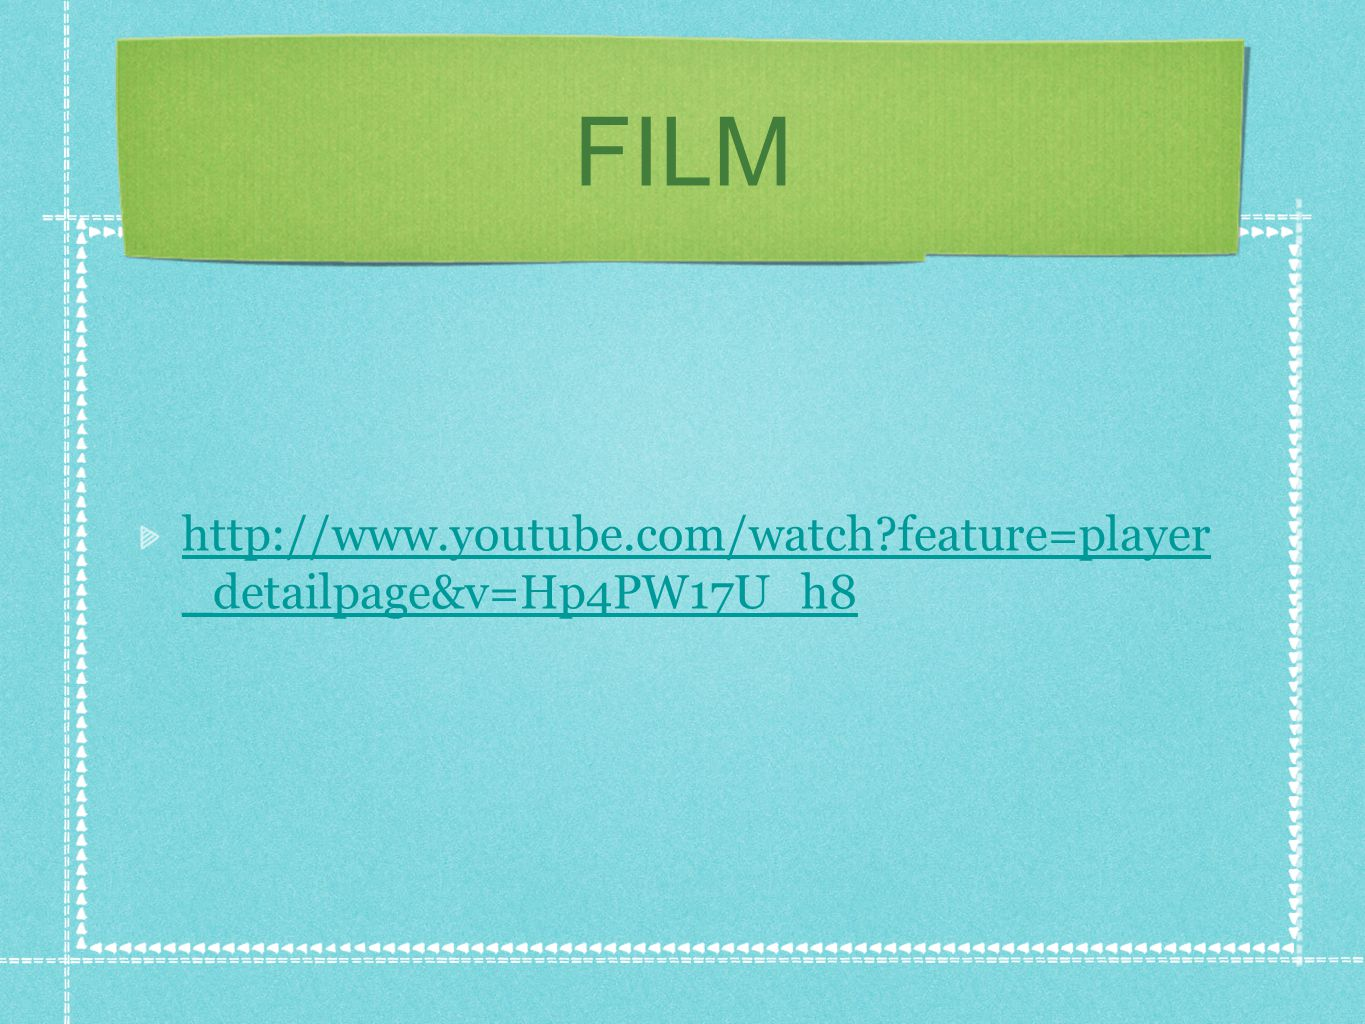 FILM http://www.youtube.com/watch feature=player _detailpage&v=Hp4PW17U_h8